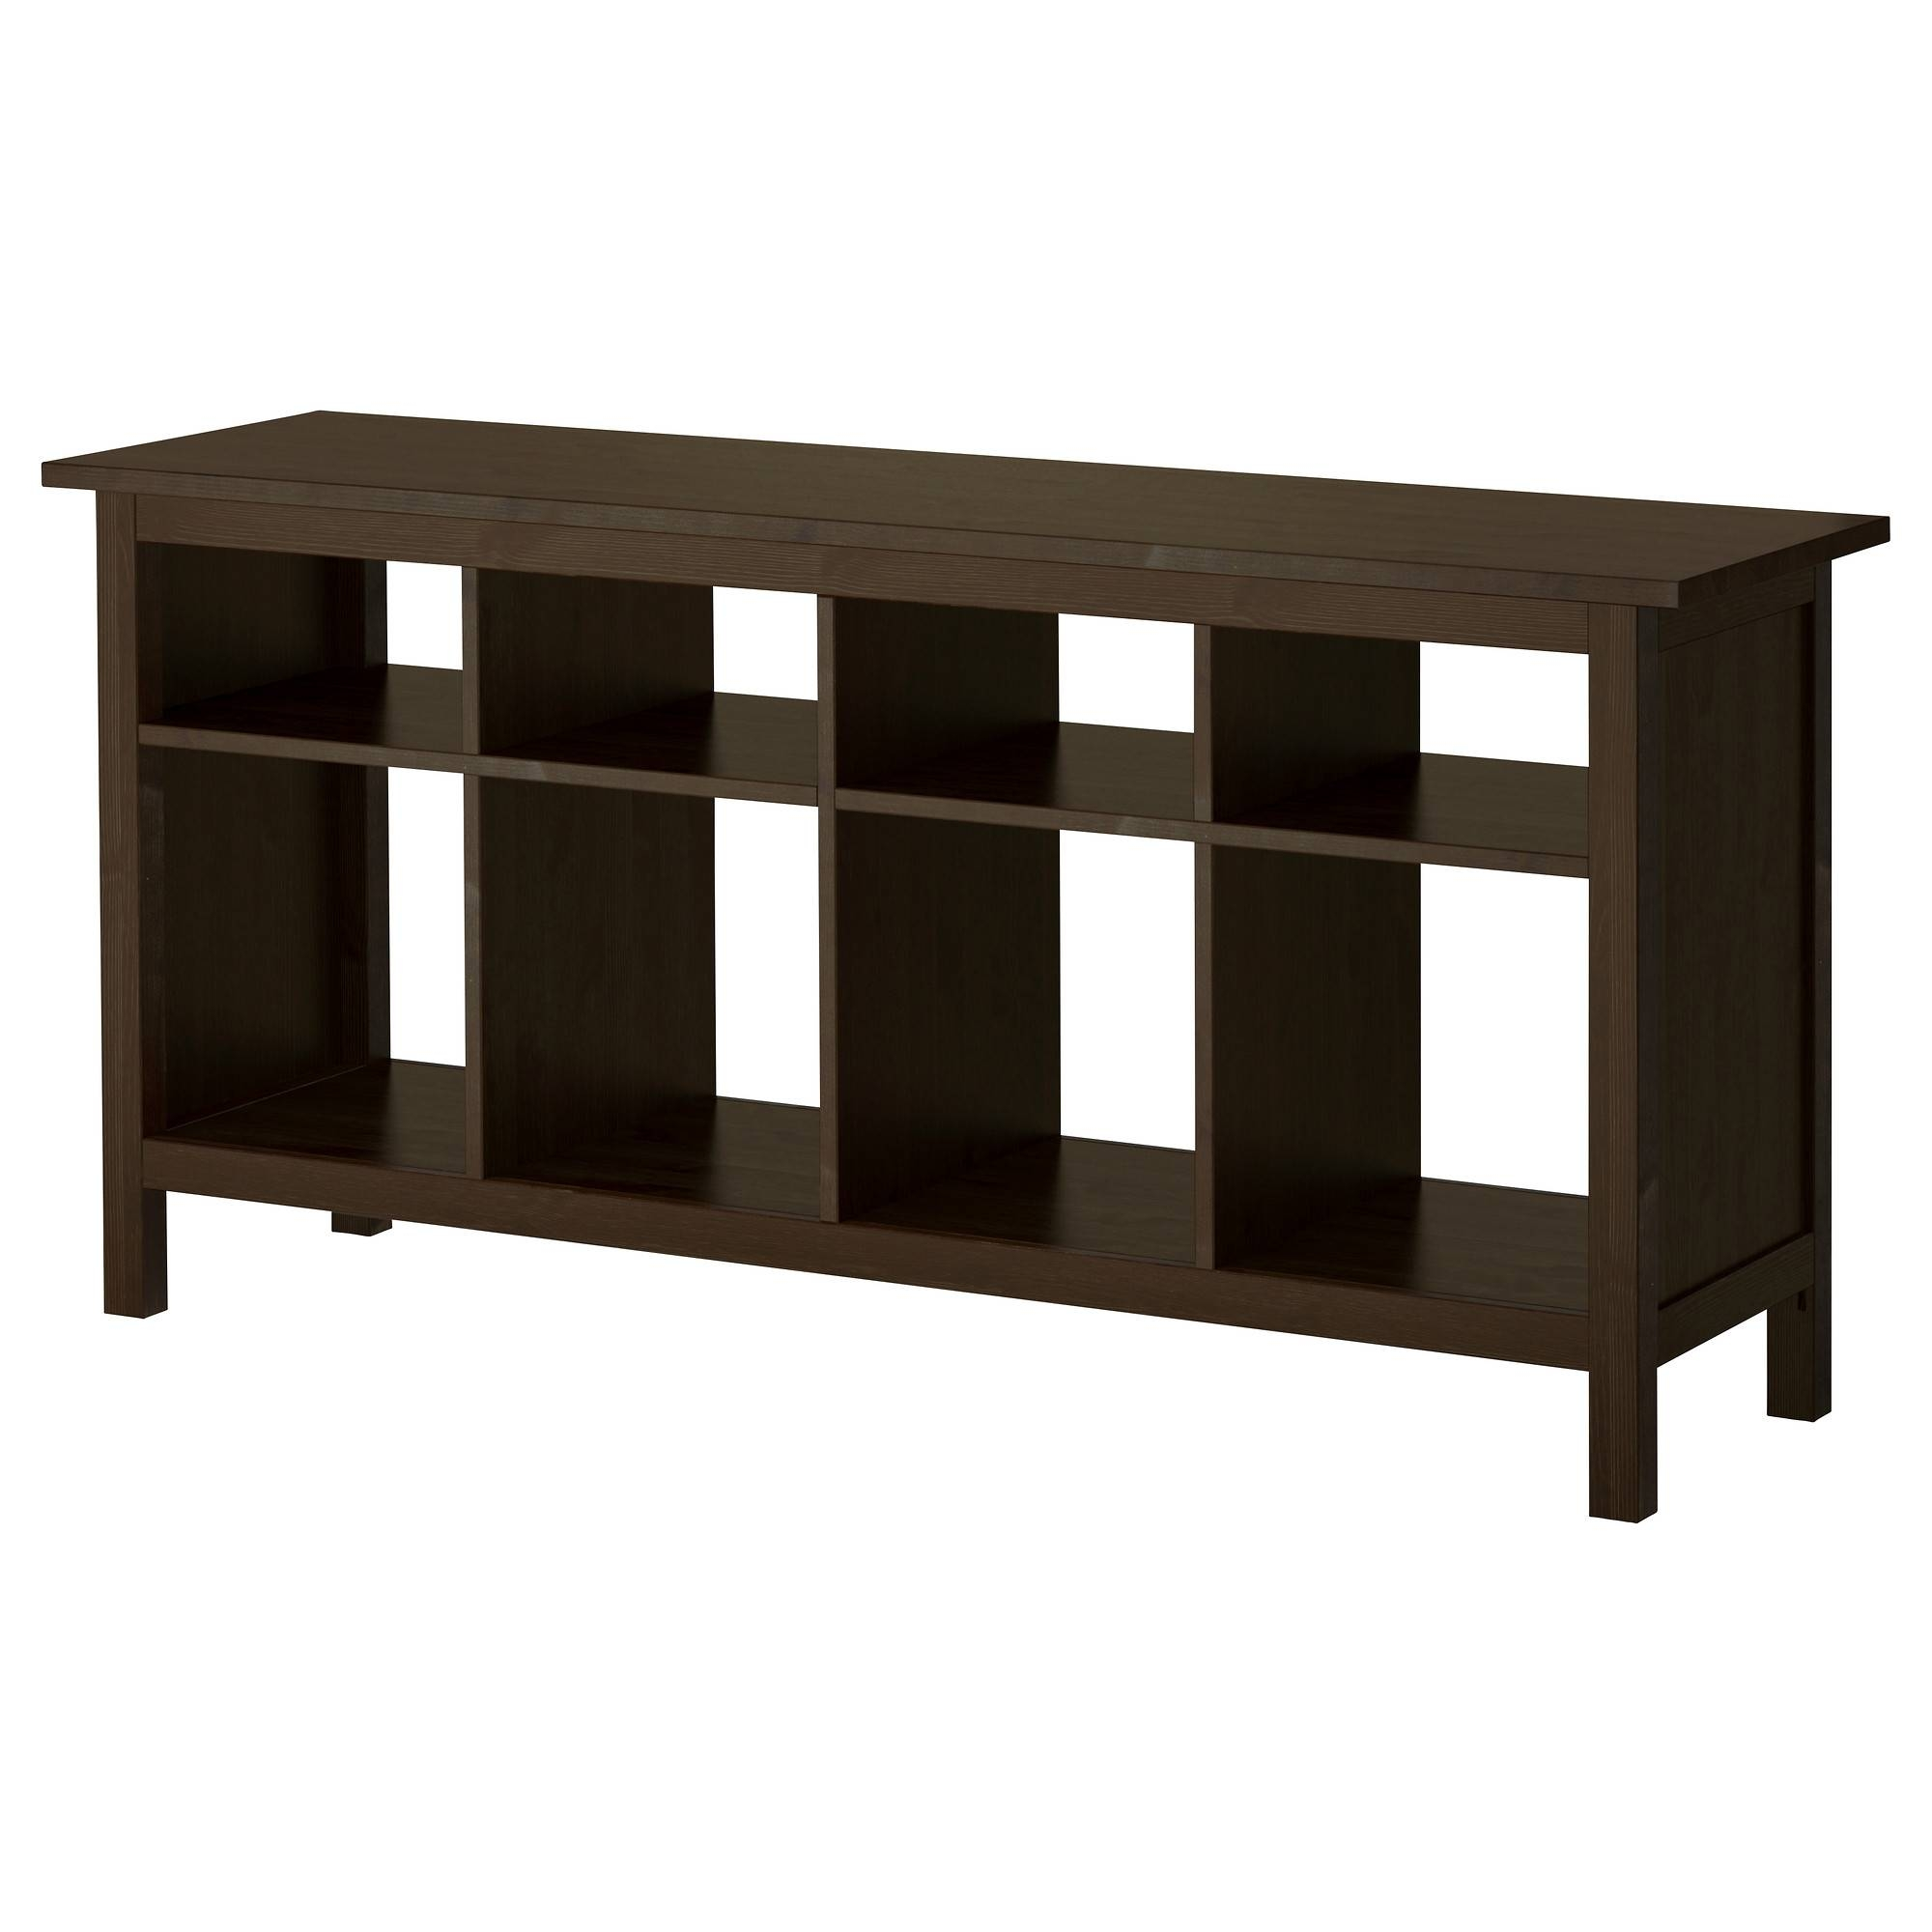 Console Tables, Sofa Tables & Sideboards - Ikea in 36 Inch Sideboards (Image 9 of 15)